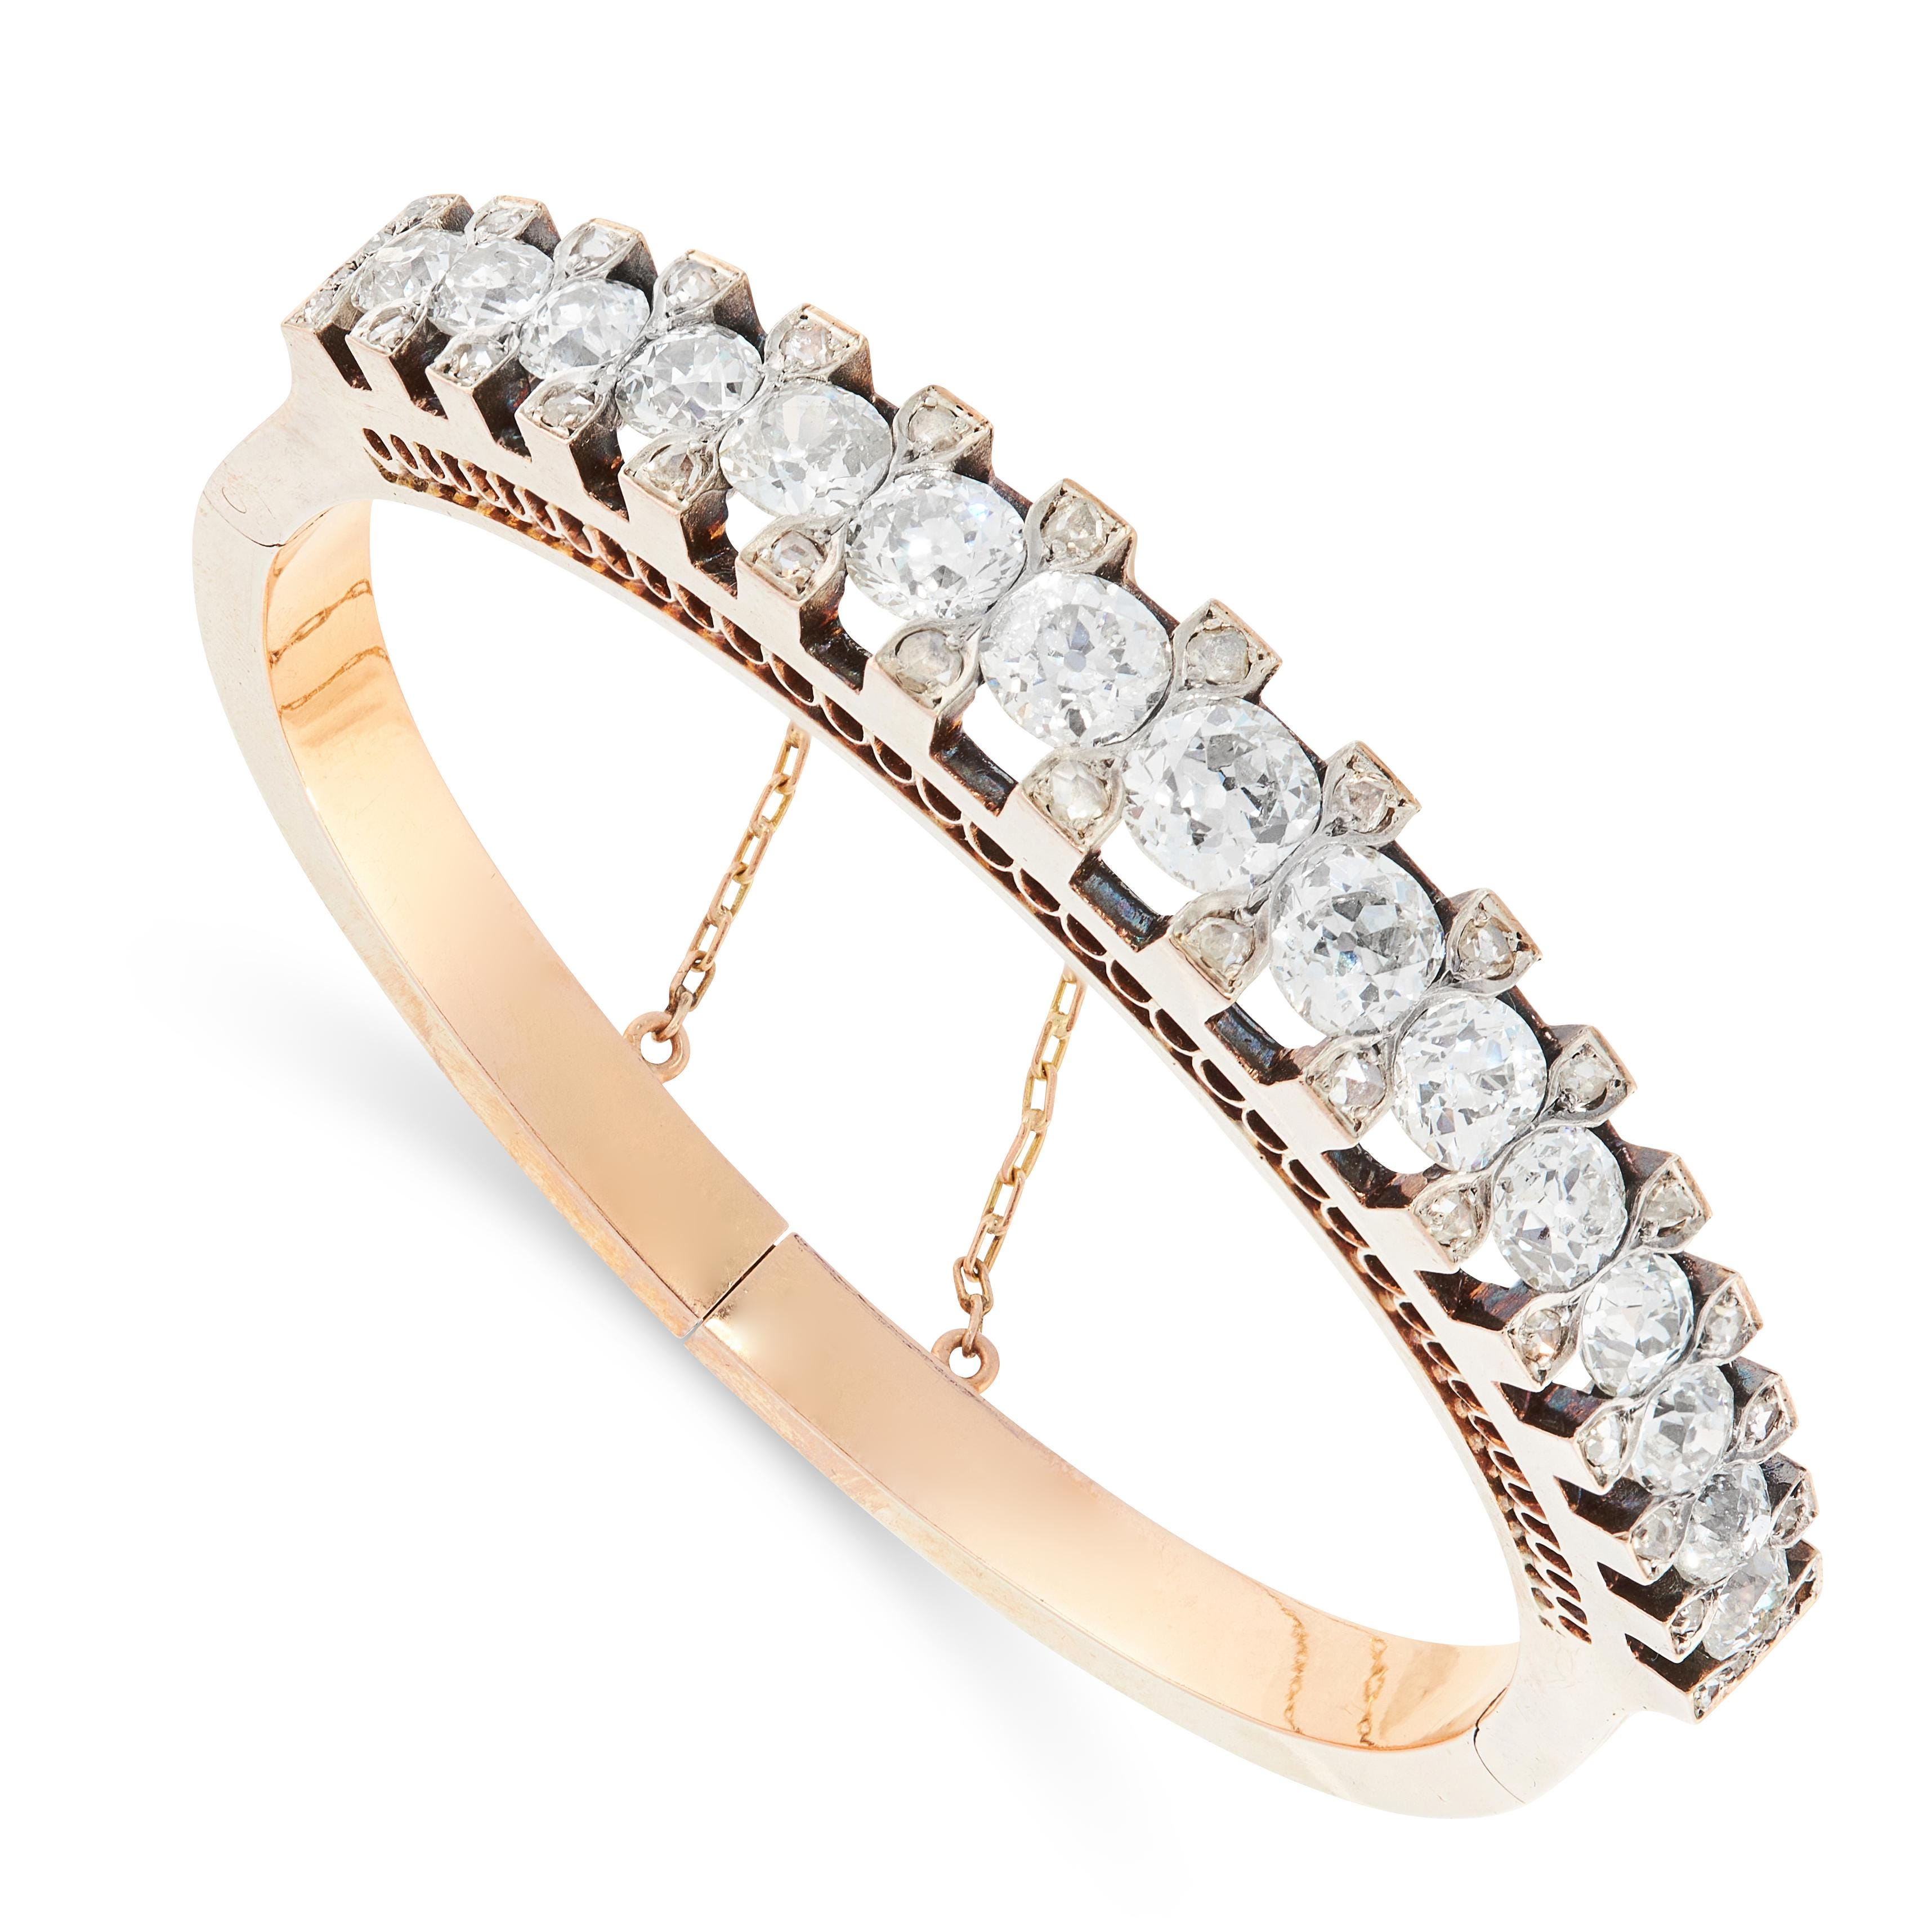 ANTIQUE DIAMOND BANGLE, 19TH CENTURY in 18ct yellow gold, comprising a single row of graduated old